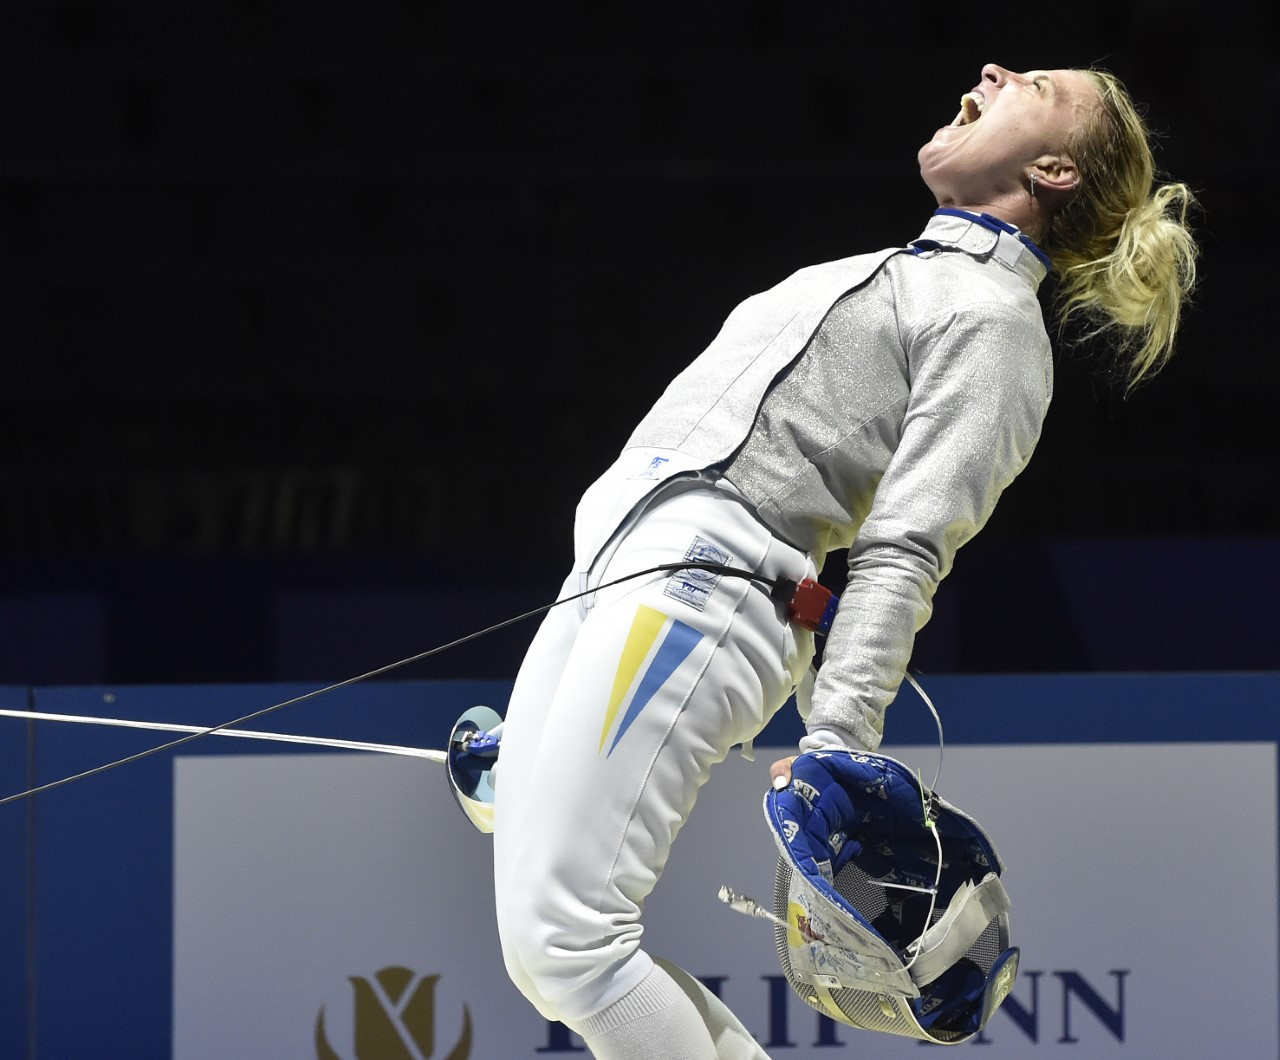 Olga Kharlan claimed her sixth European title on a dramatic first day in Düsseldorf ©FIE